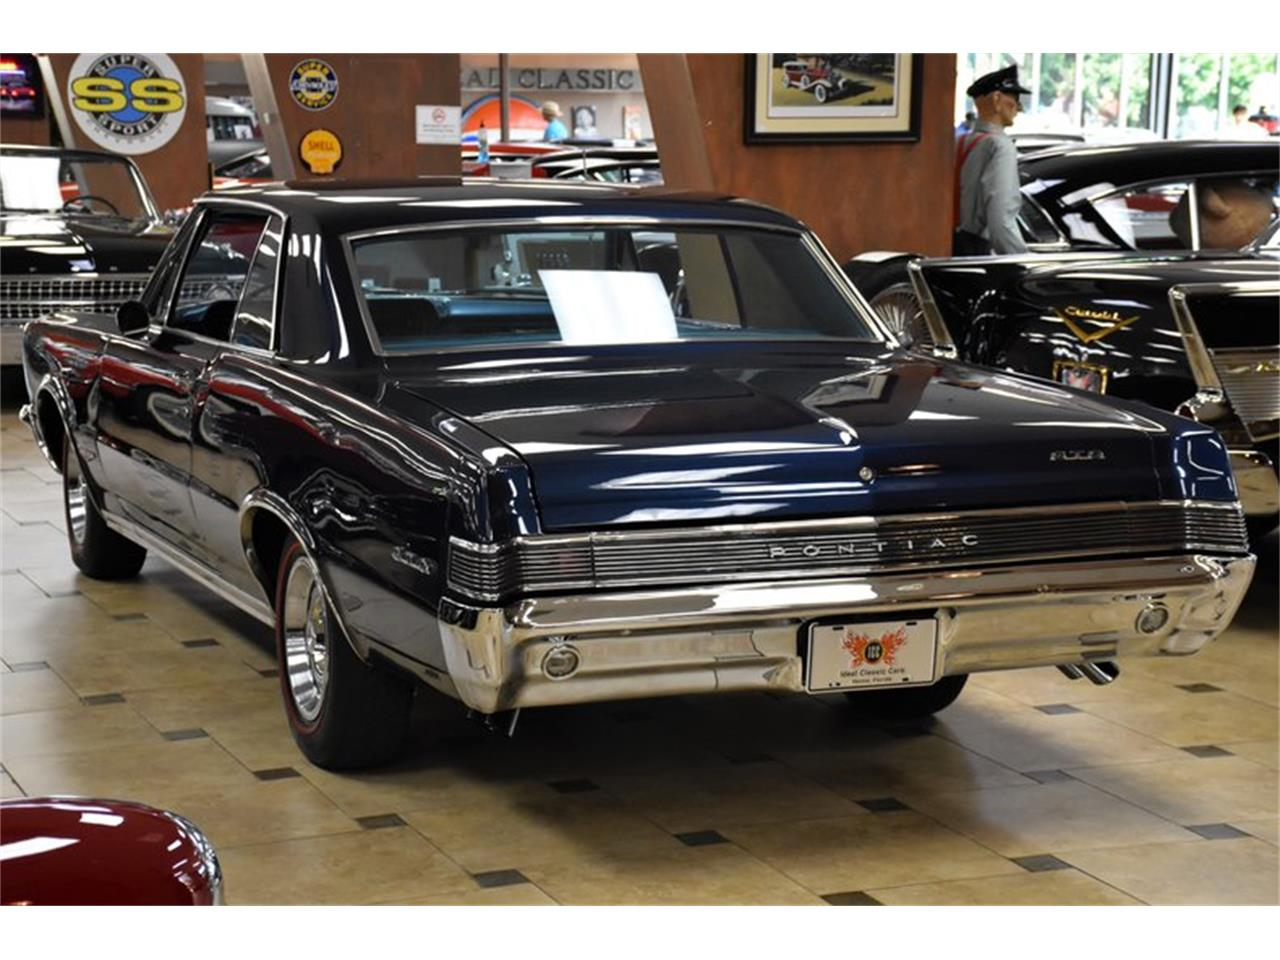 Large Picture of 1965 GTO located in Venice Florida Auction Vehicle Offered by Ideal Classic Cars - Q6O3